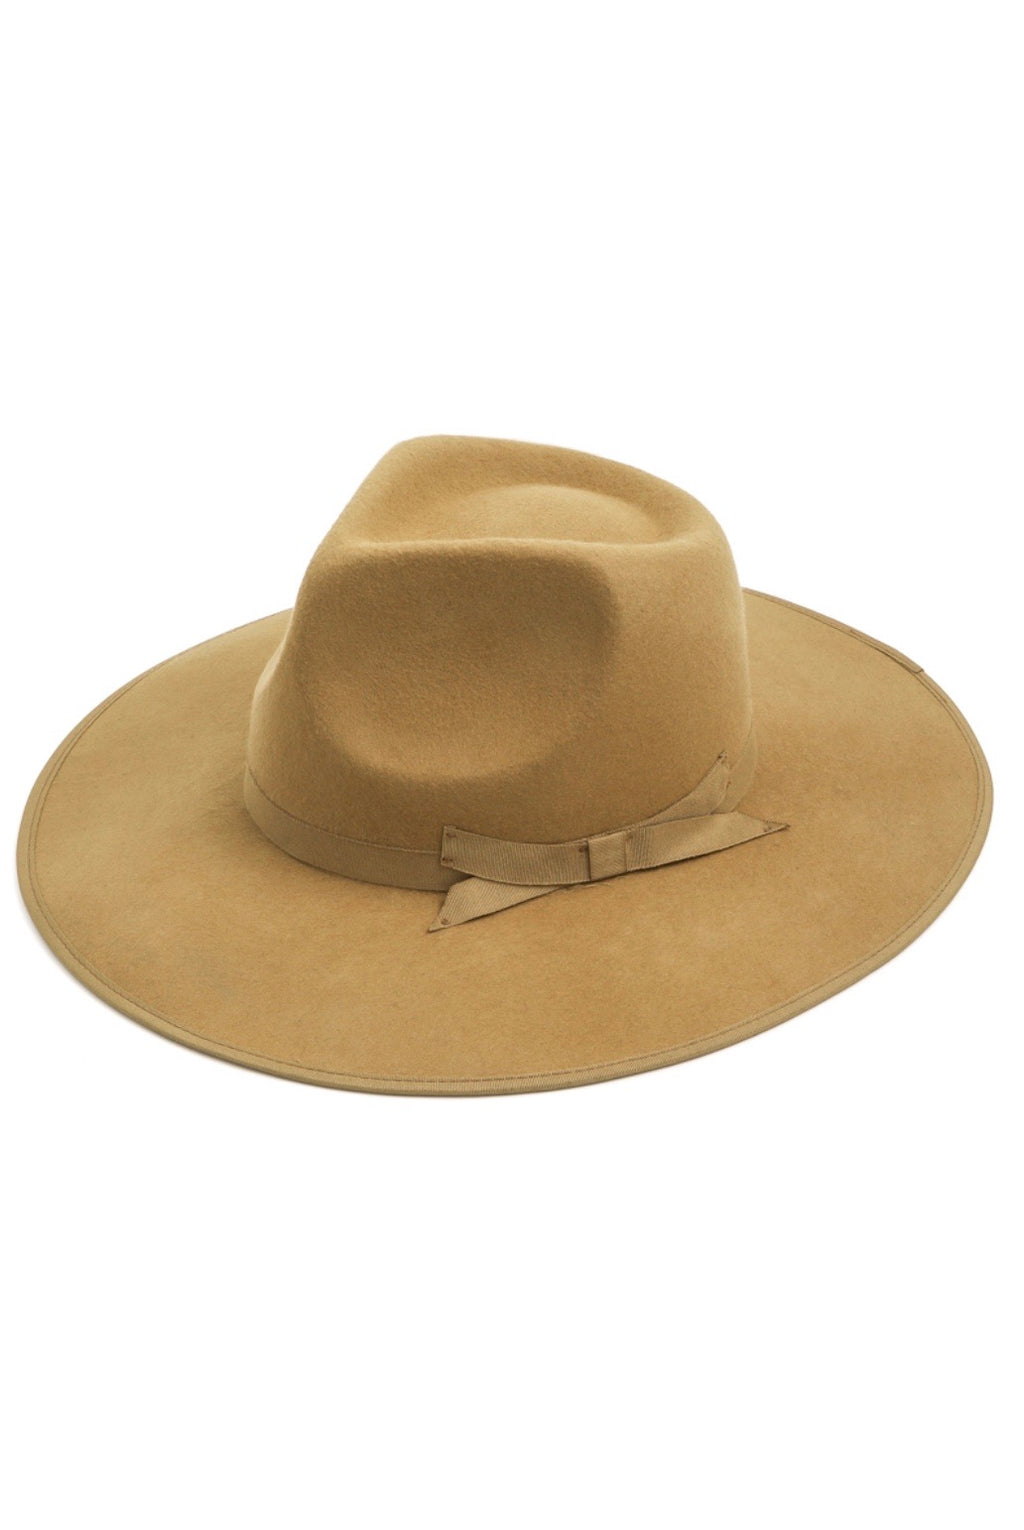 Dakota Wool Fedora Hat - Tan - Pineapple Lain Boutique